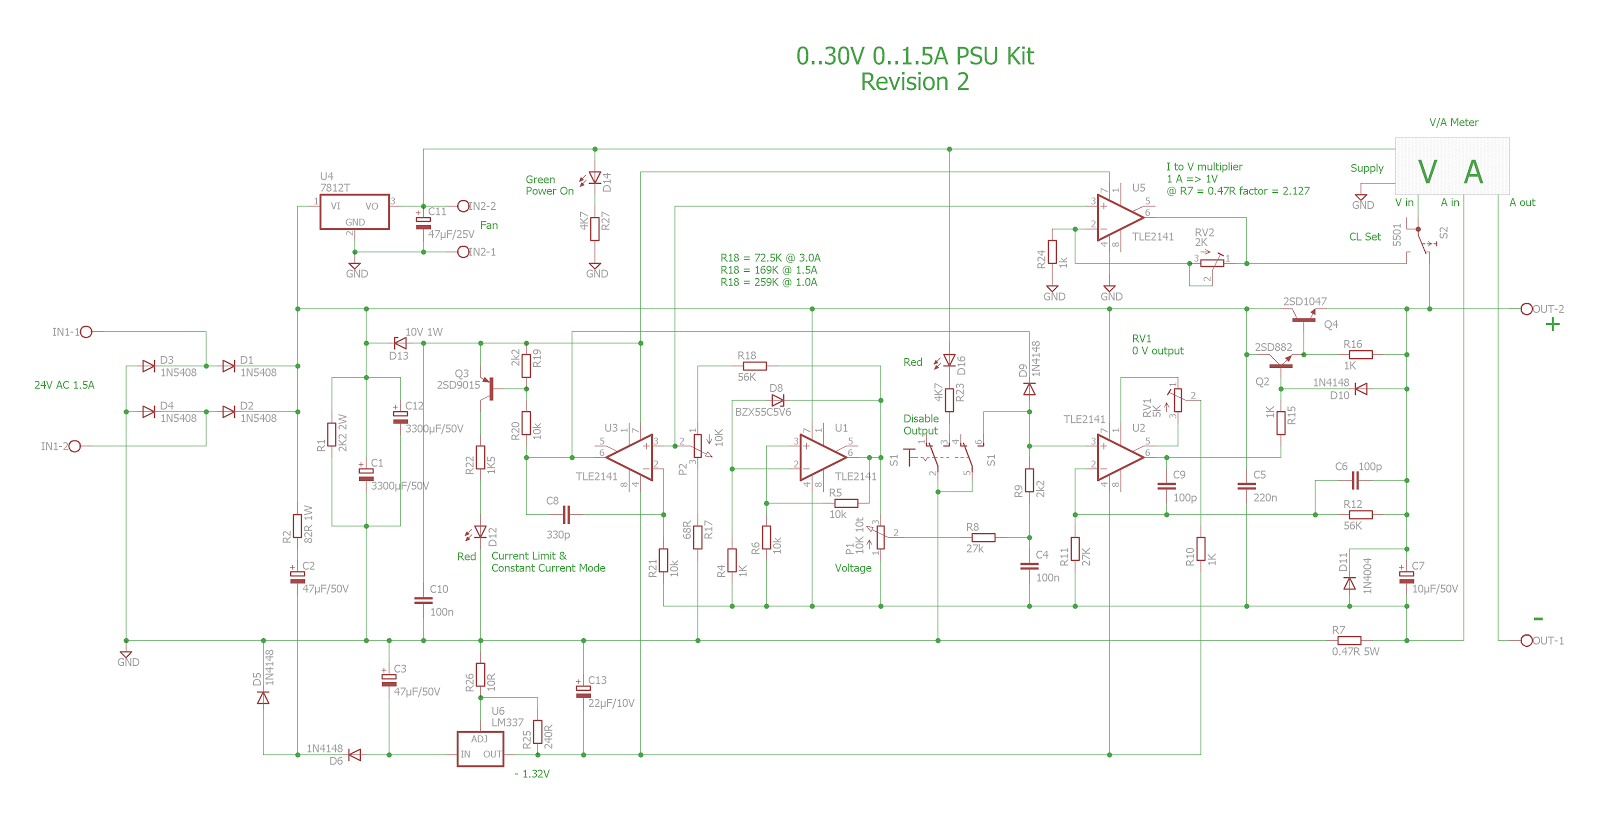 Here is the final schematic: